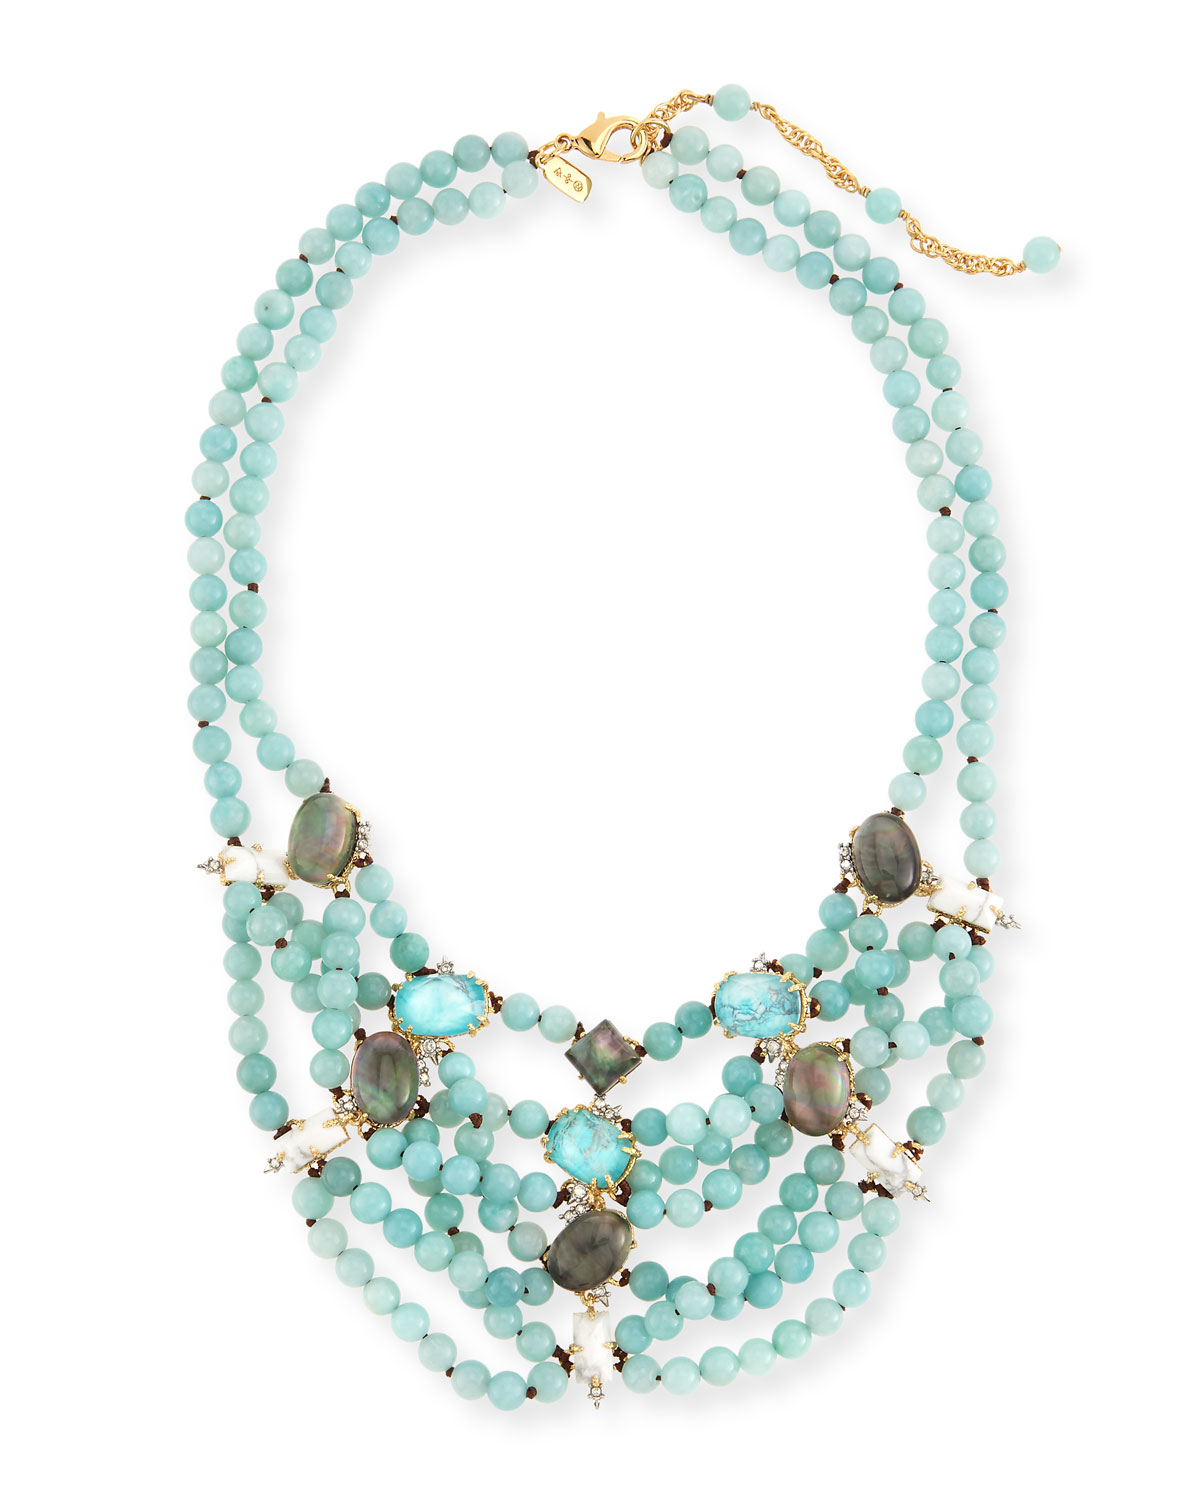 alexis c necklace nordstrom jewelry bittar